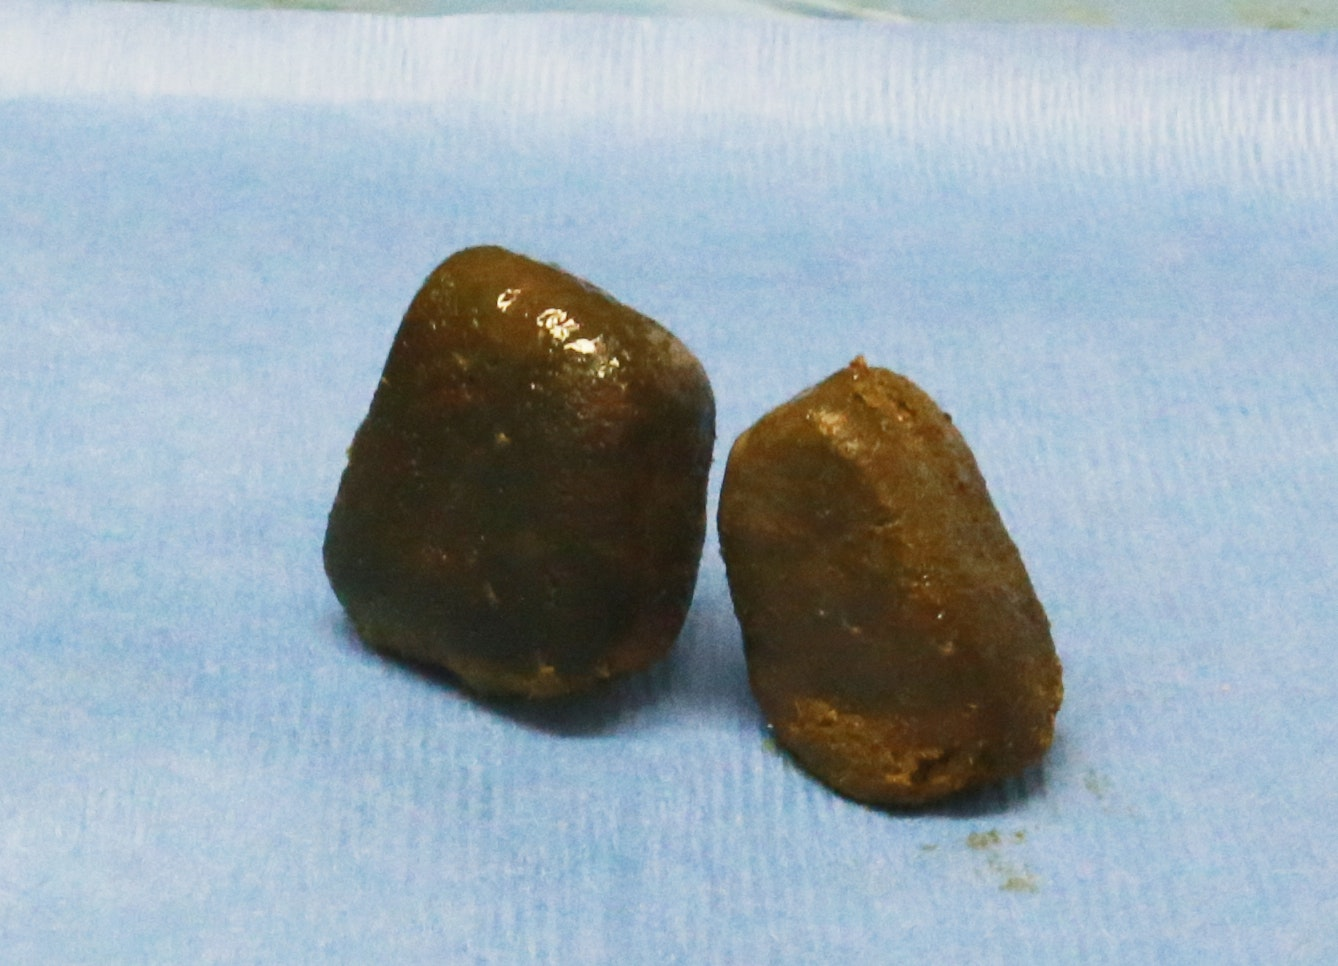 wombat poo cube shape ignobel